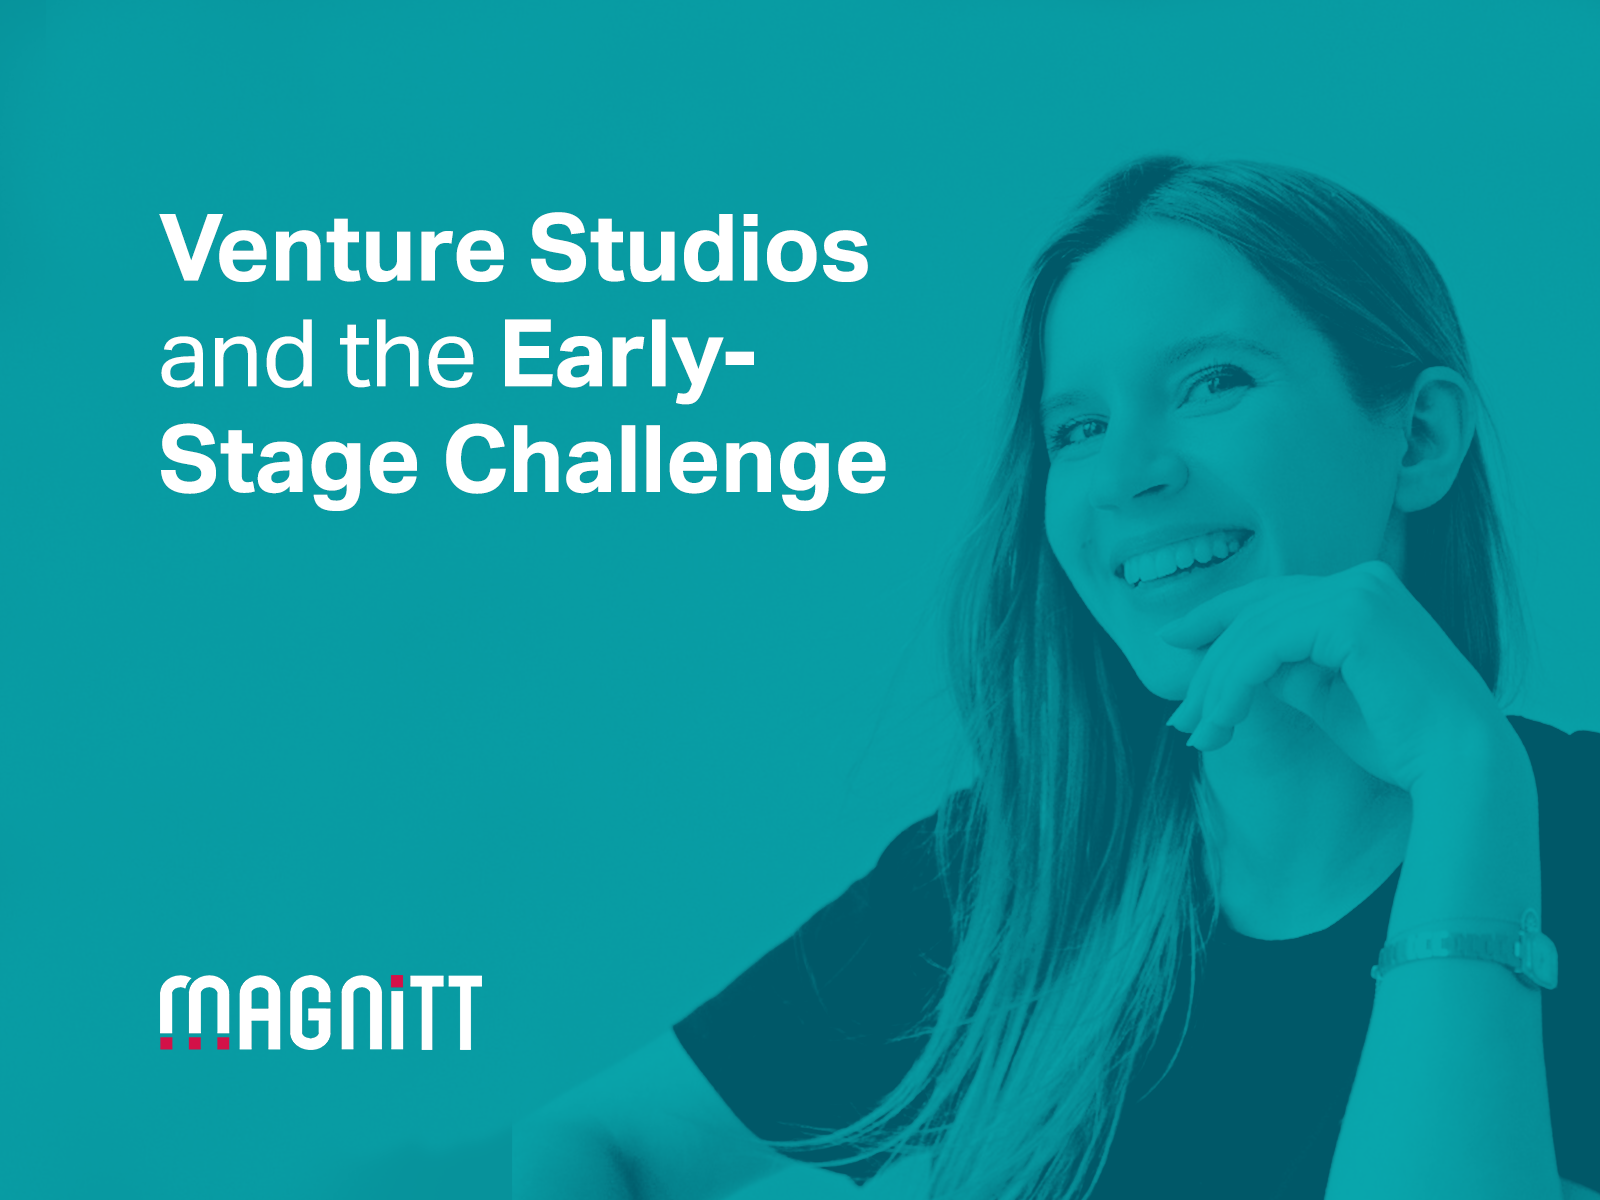 Venture Studios and the Early-Stage Challenge